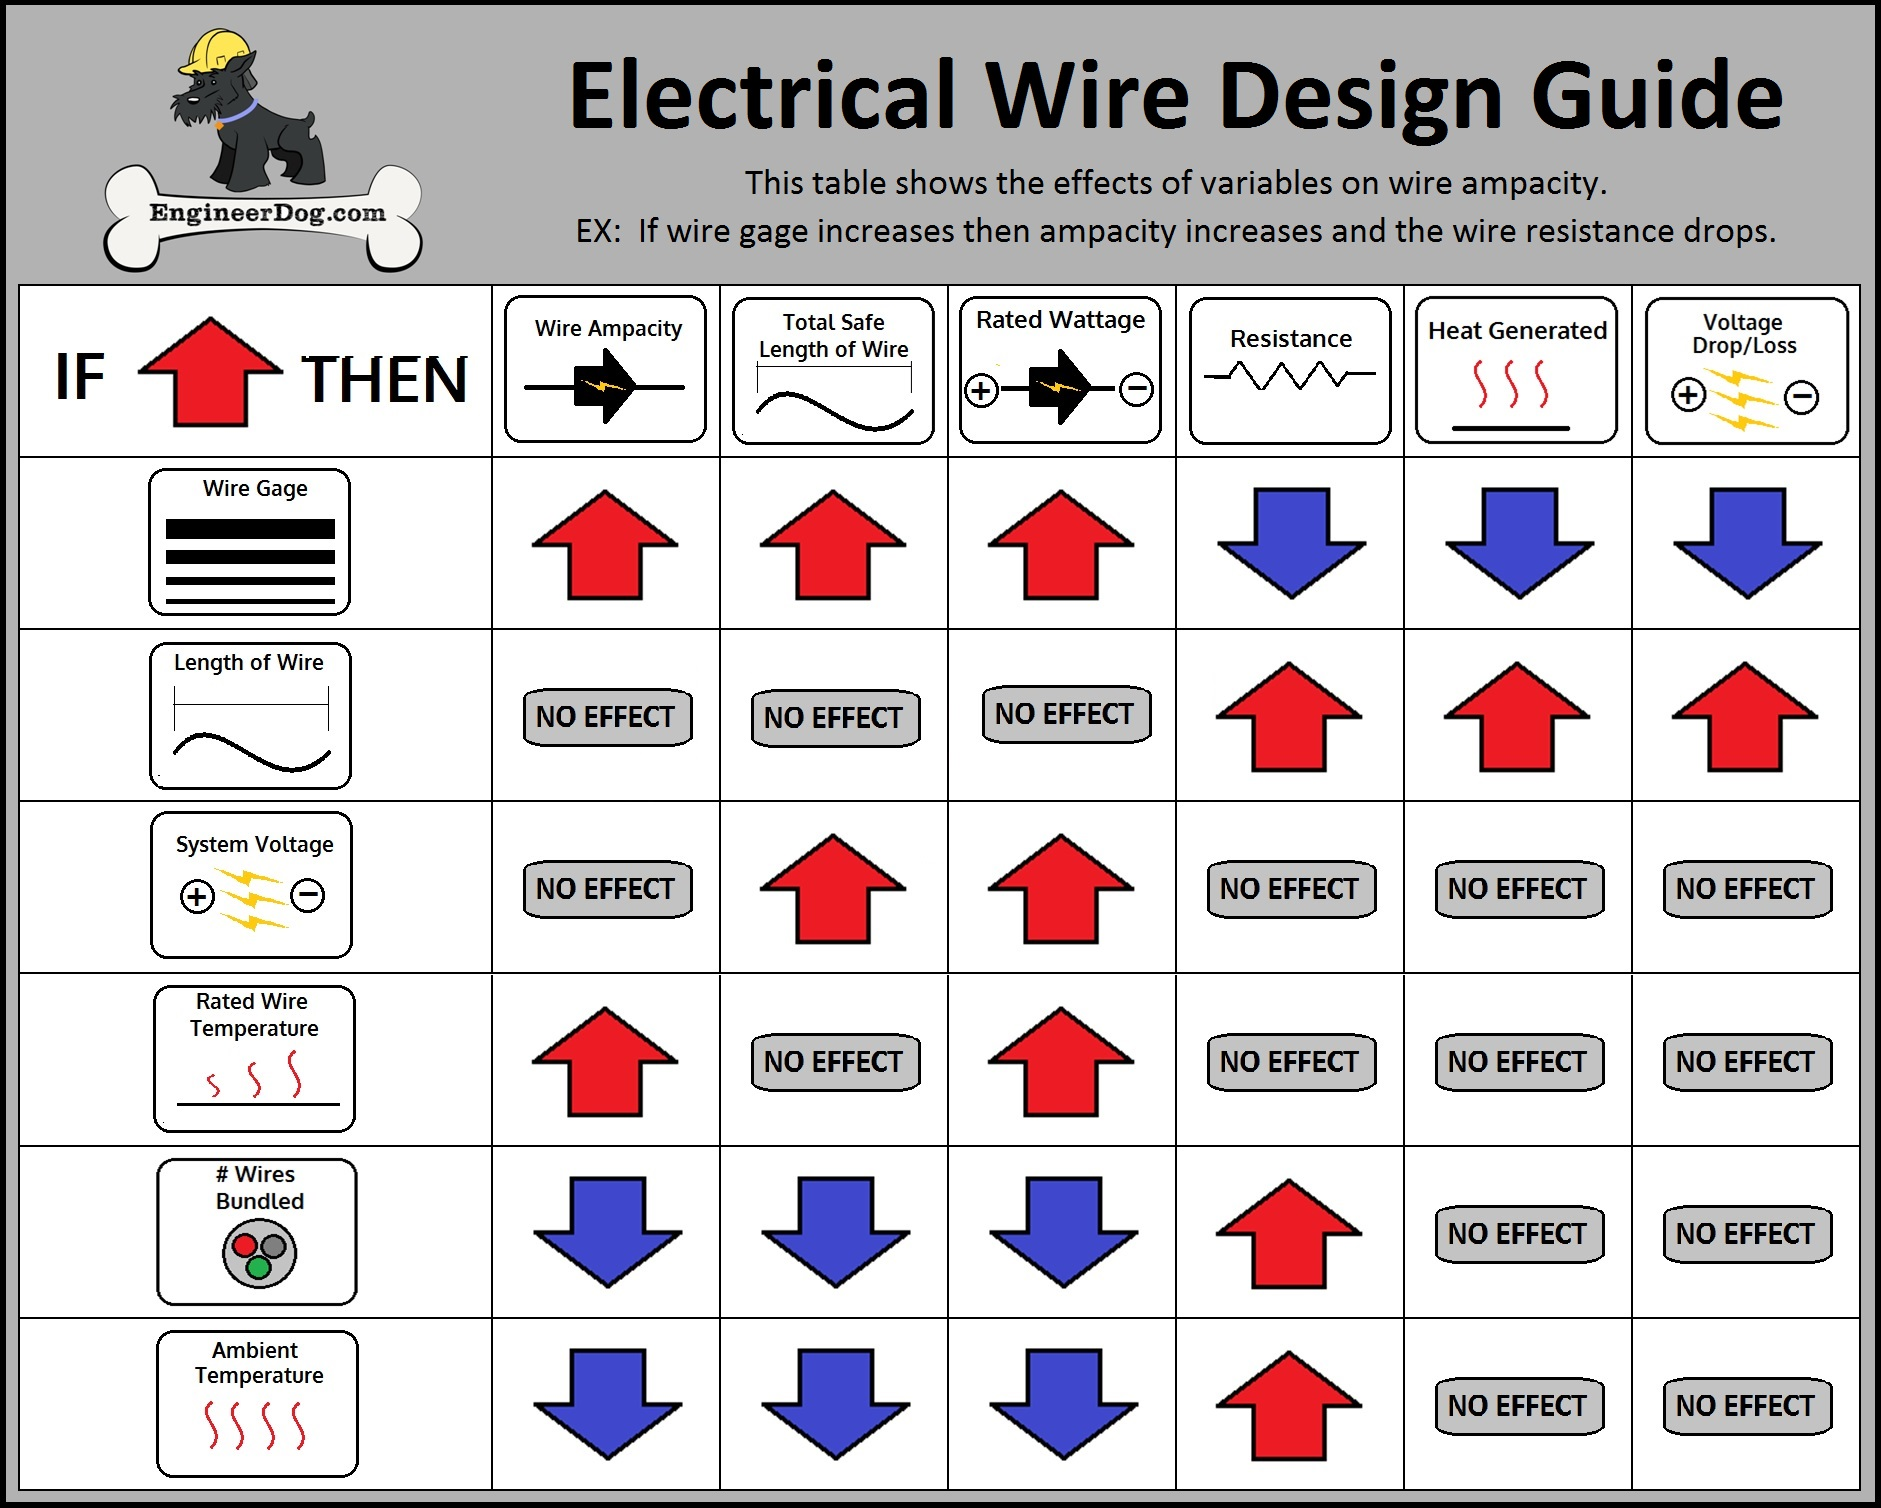 Home Wiring Amp Rating - Wiring Diagram Database